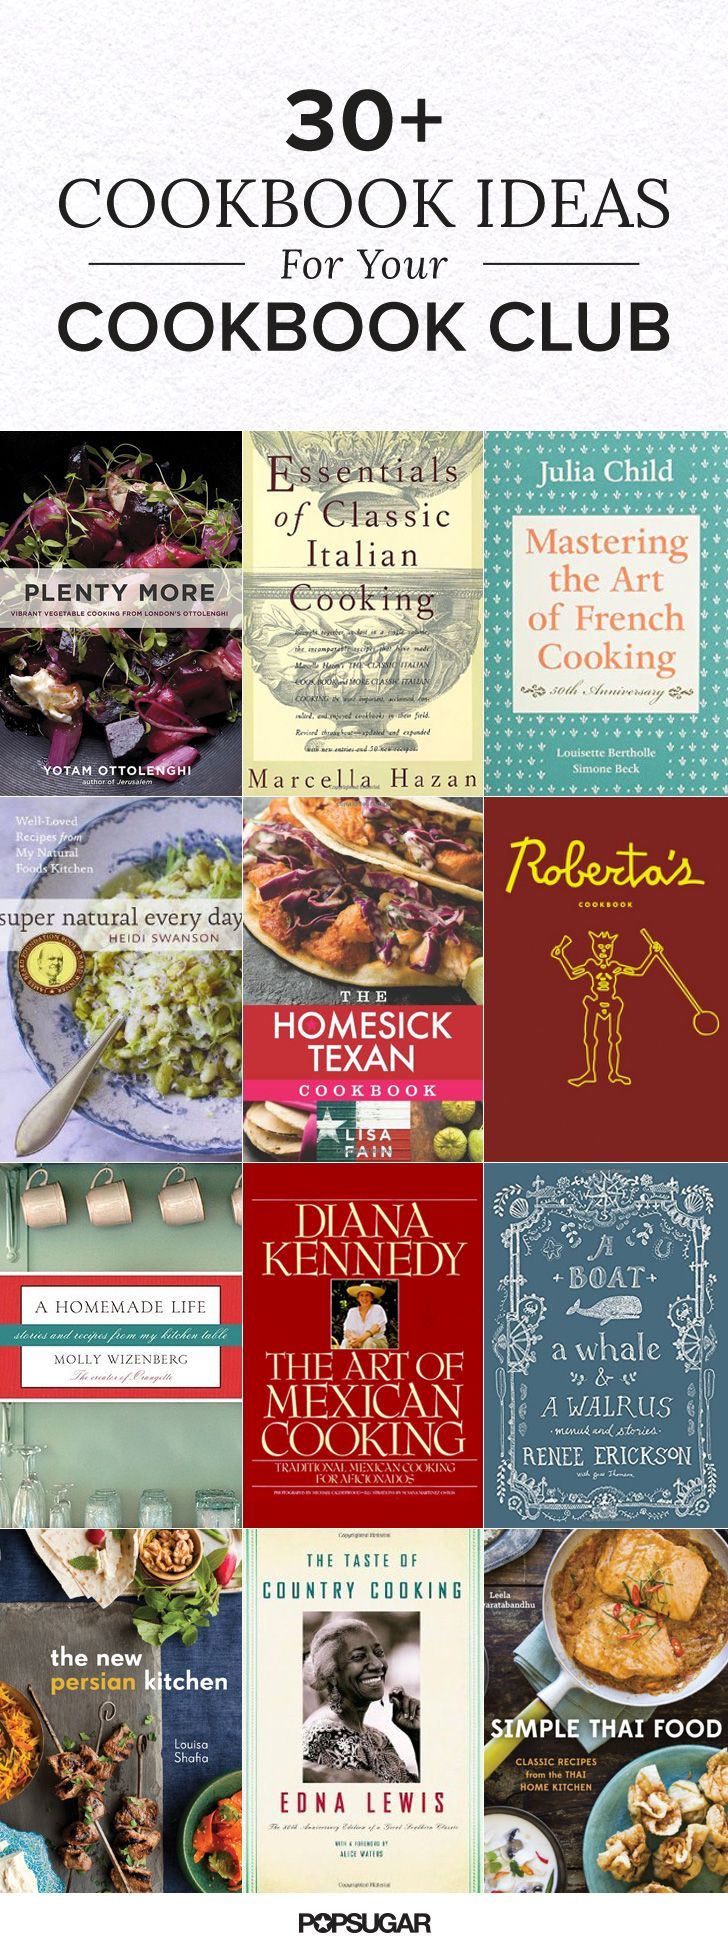 30+ Cookbook Ideas For Your Cookbook Club + Tips for Starting One